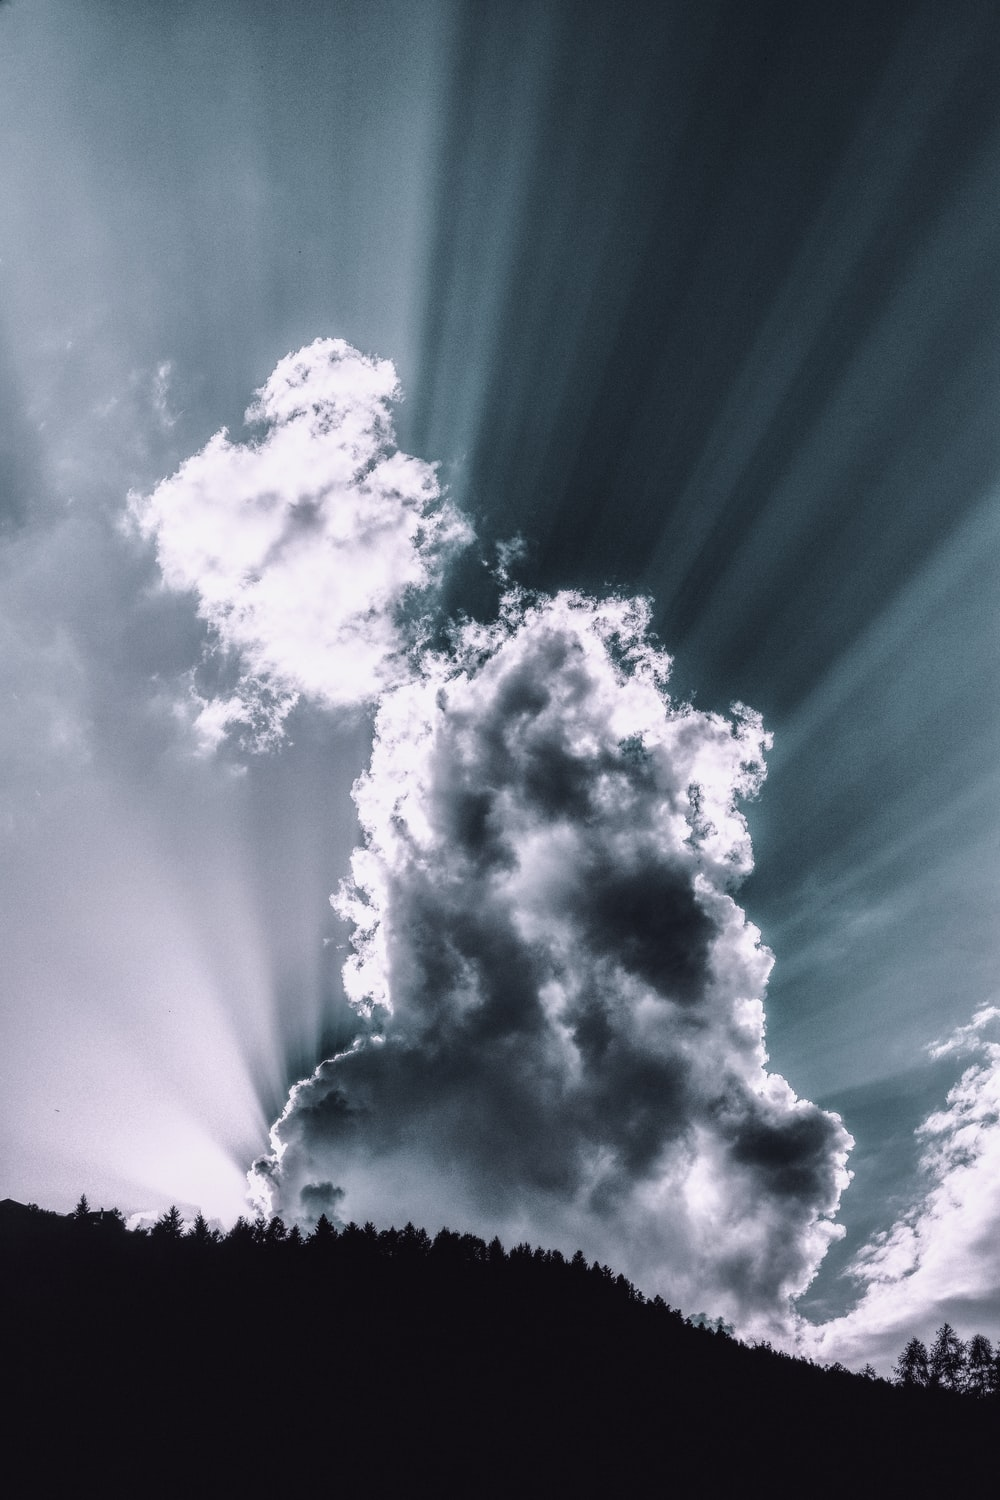 sunlight rays through cloud